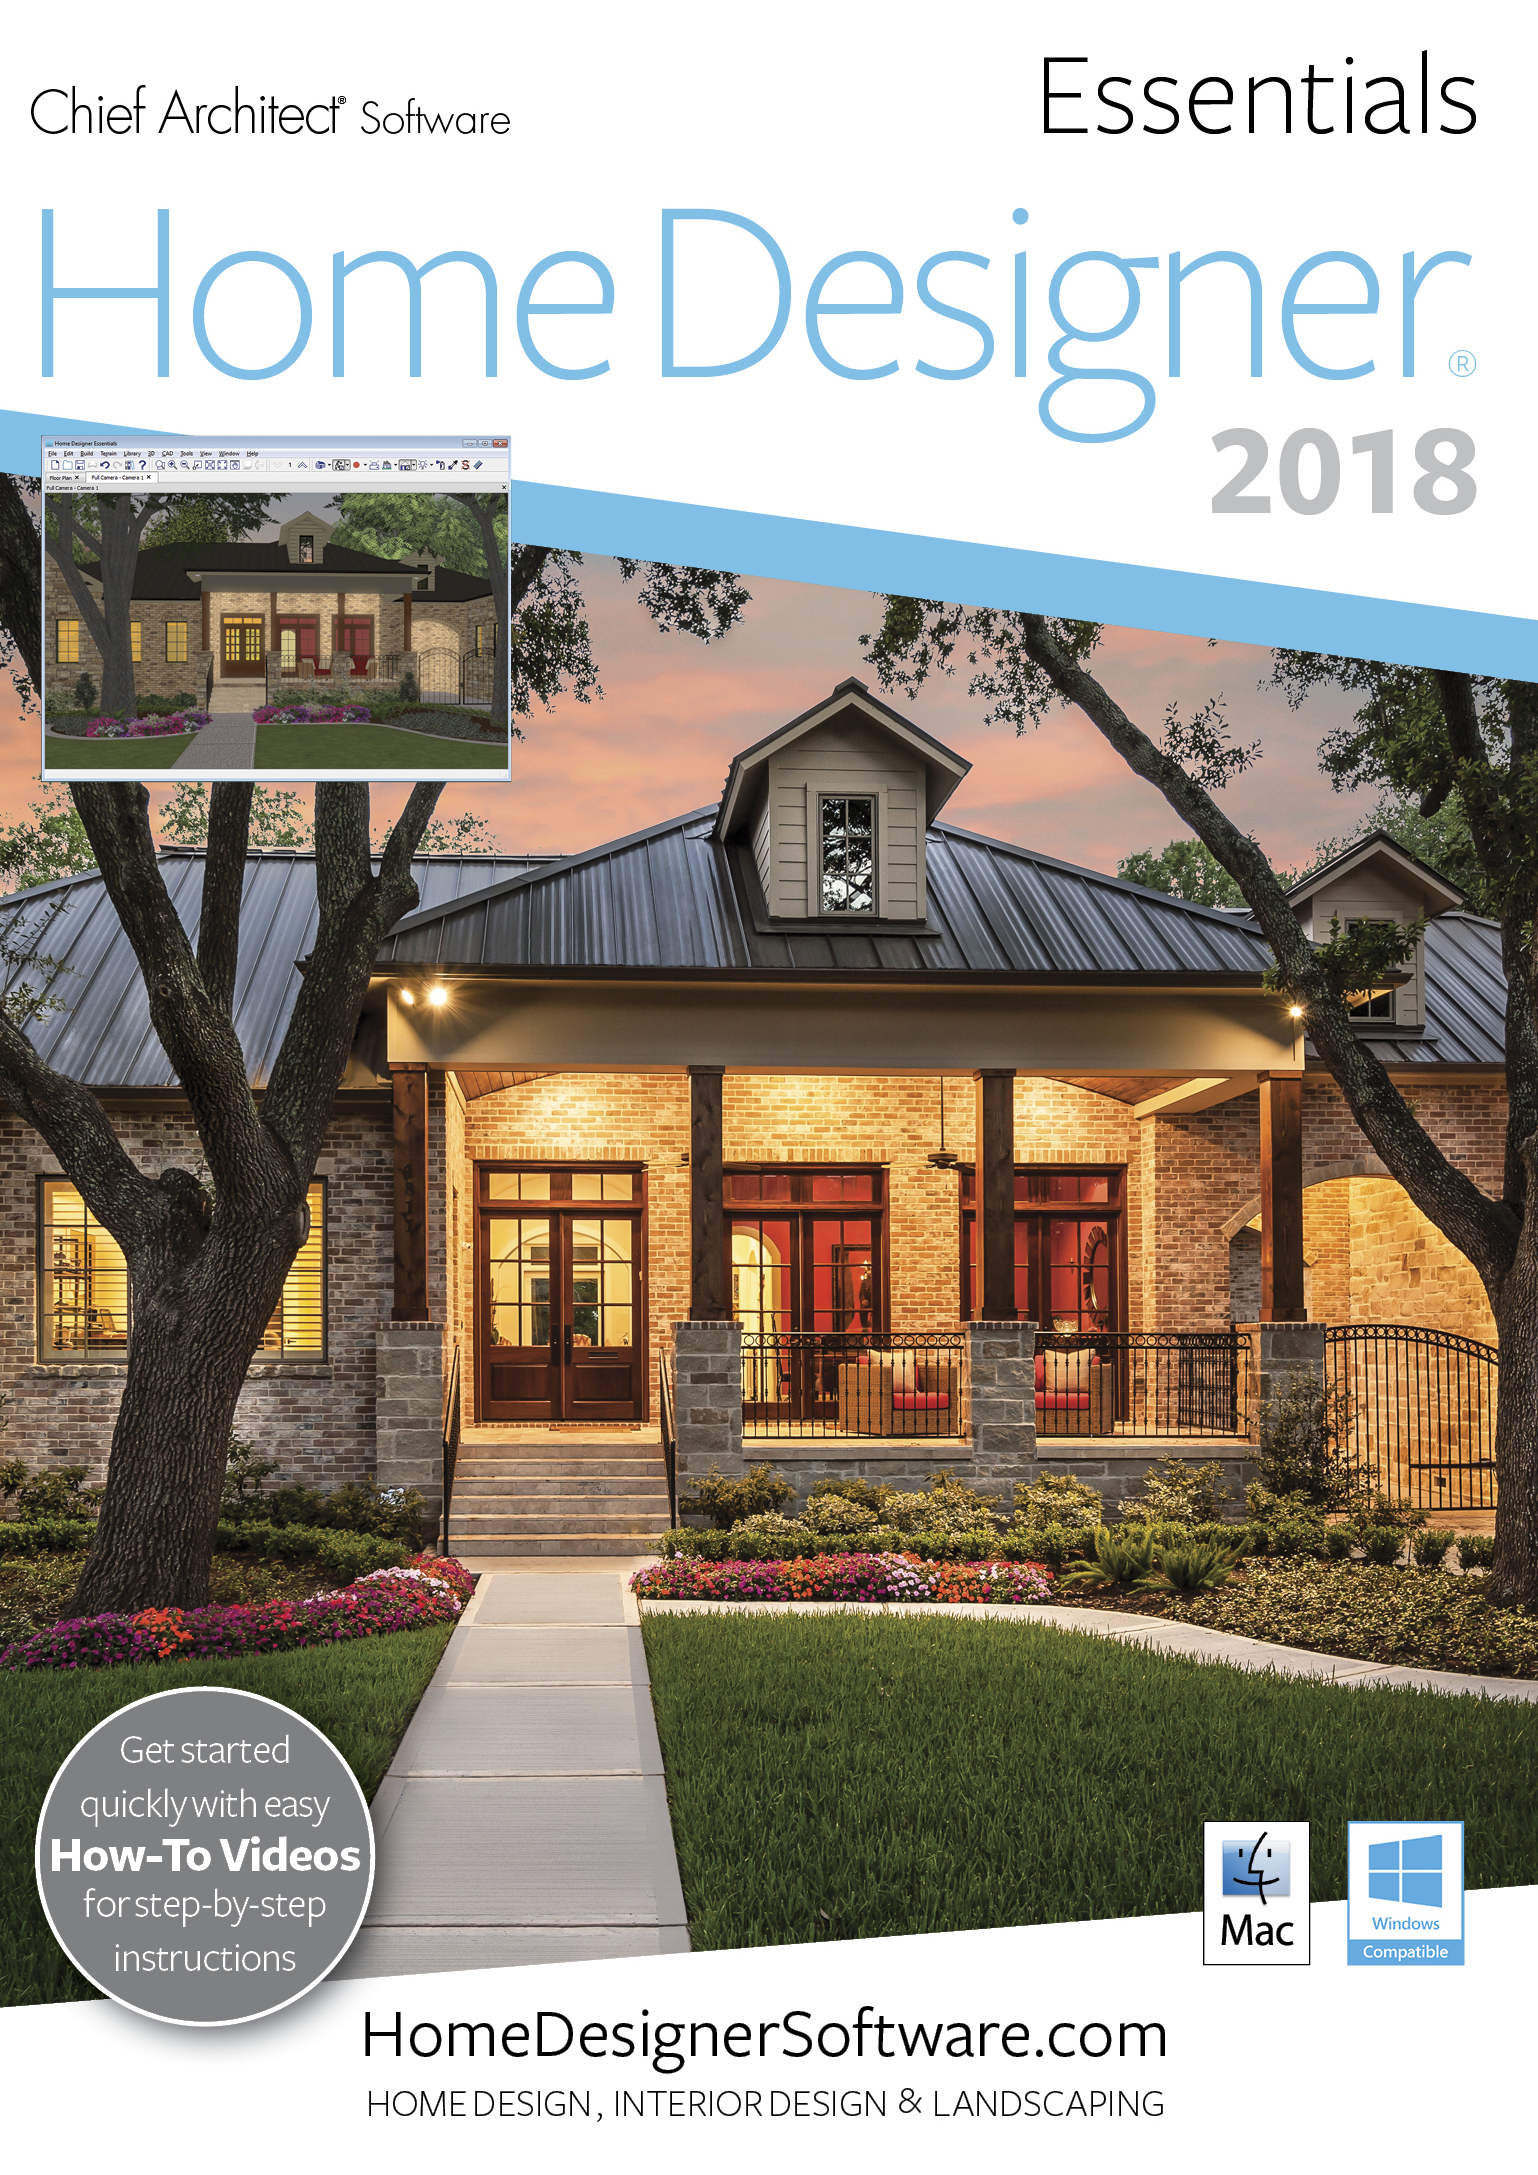 Home Designer Essentials 2018 - PC Download [Download] by Chief Architect